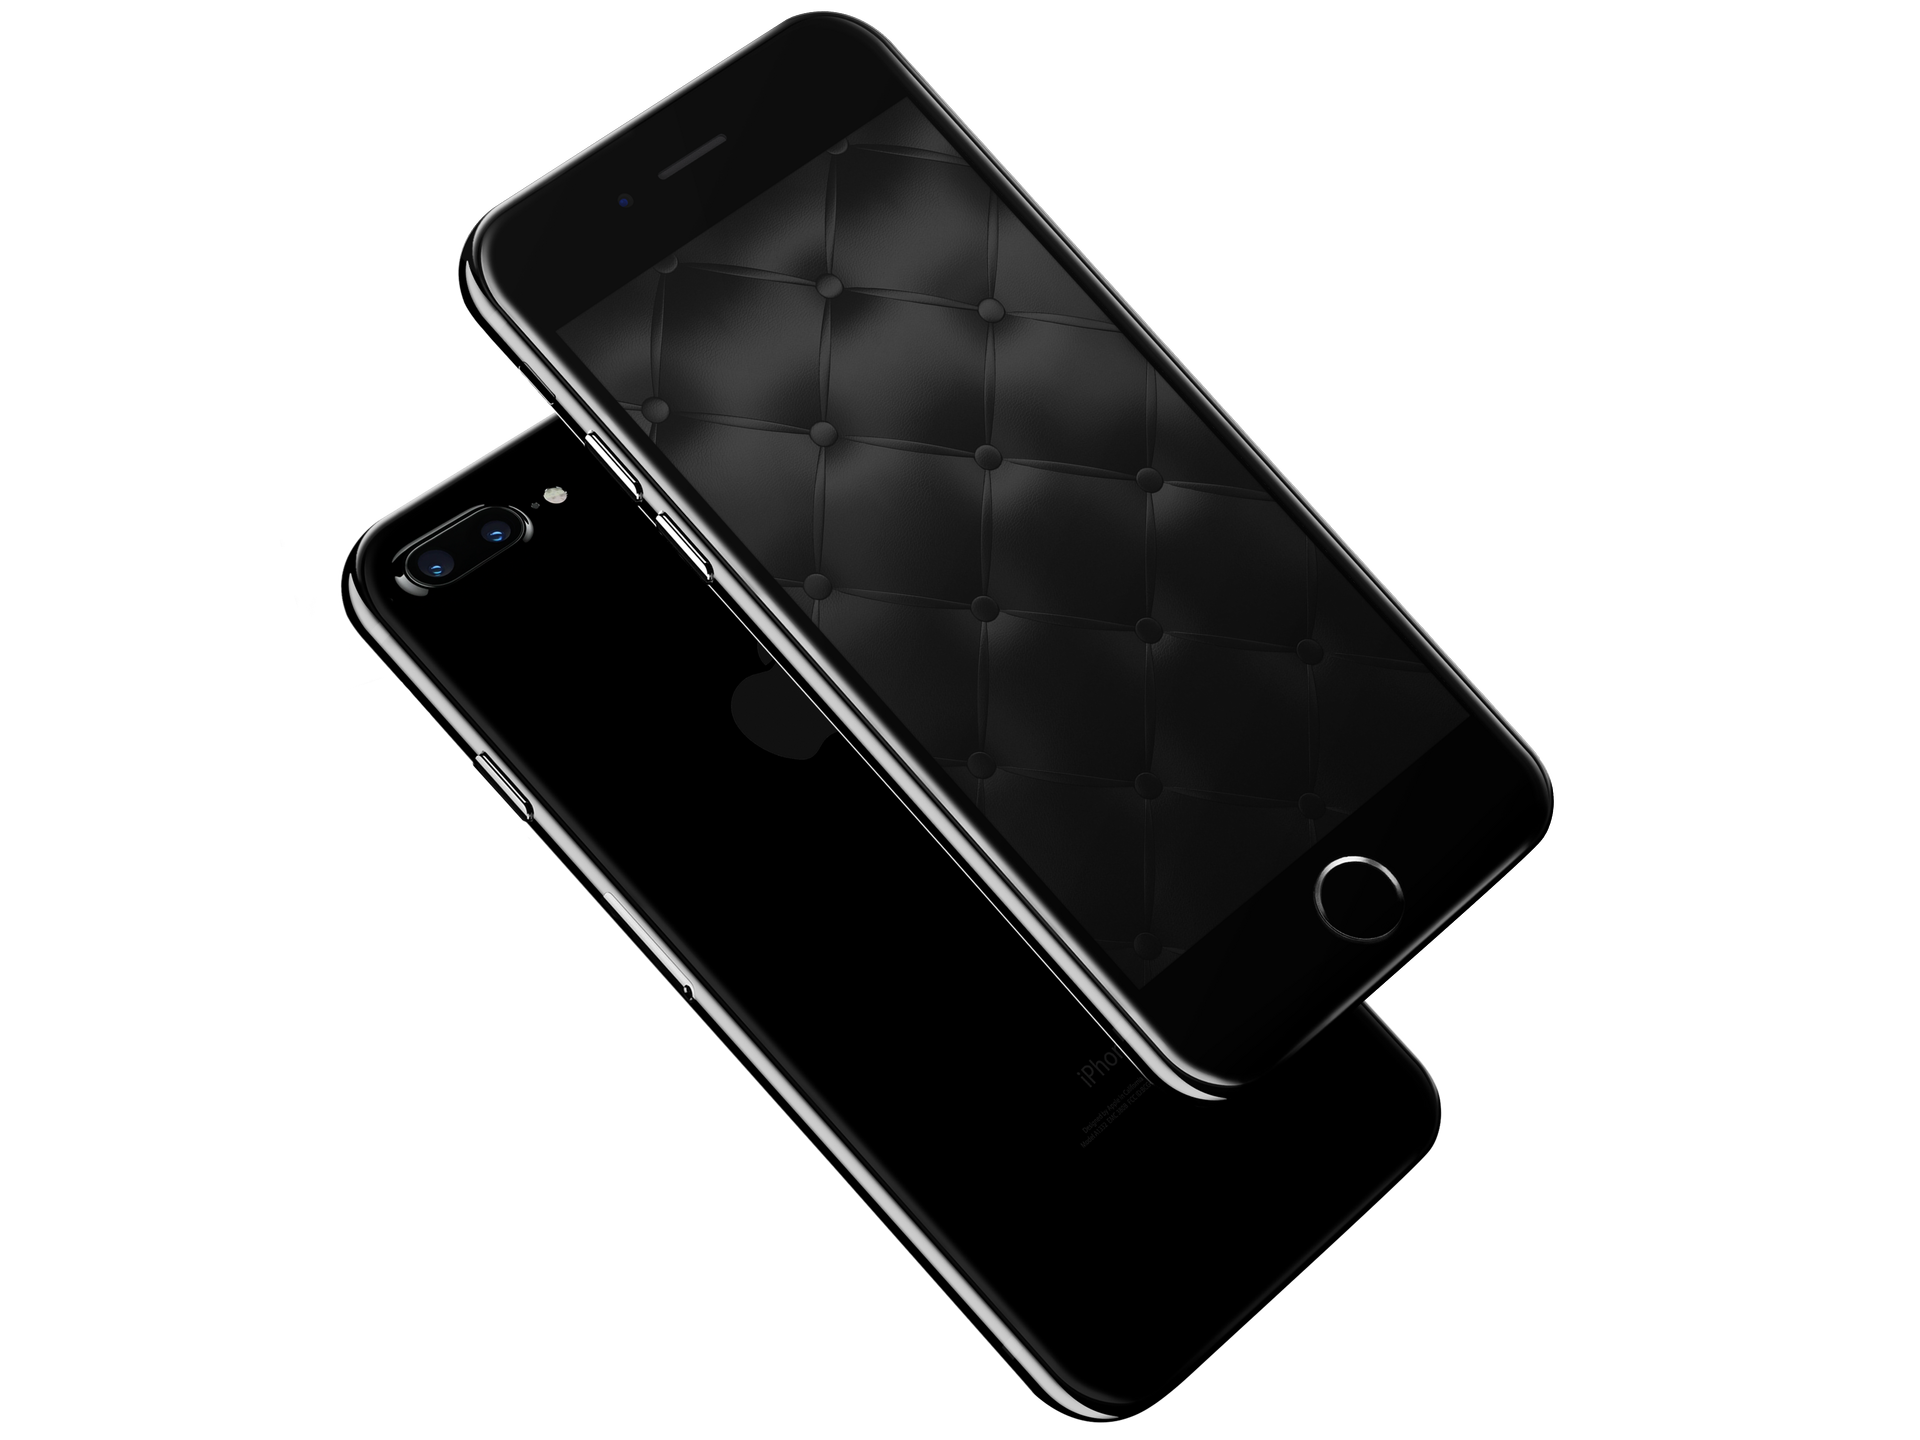 iphone-7-dark-black-wallpaper-splash